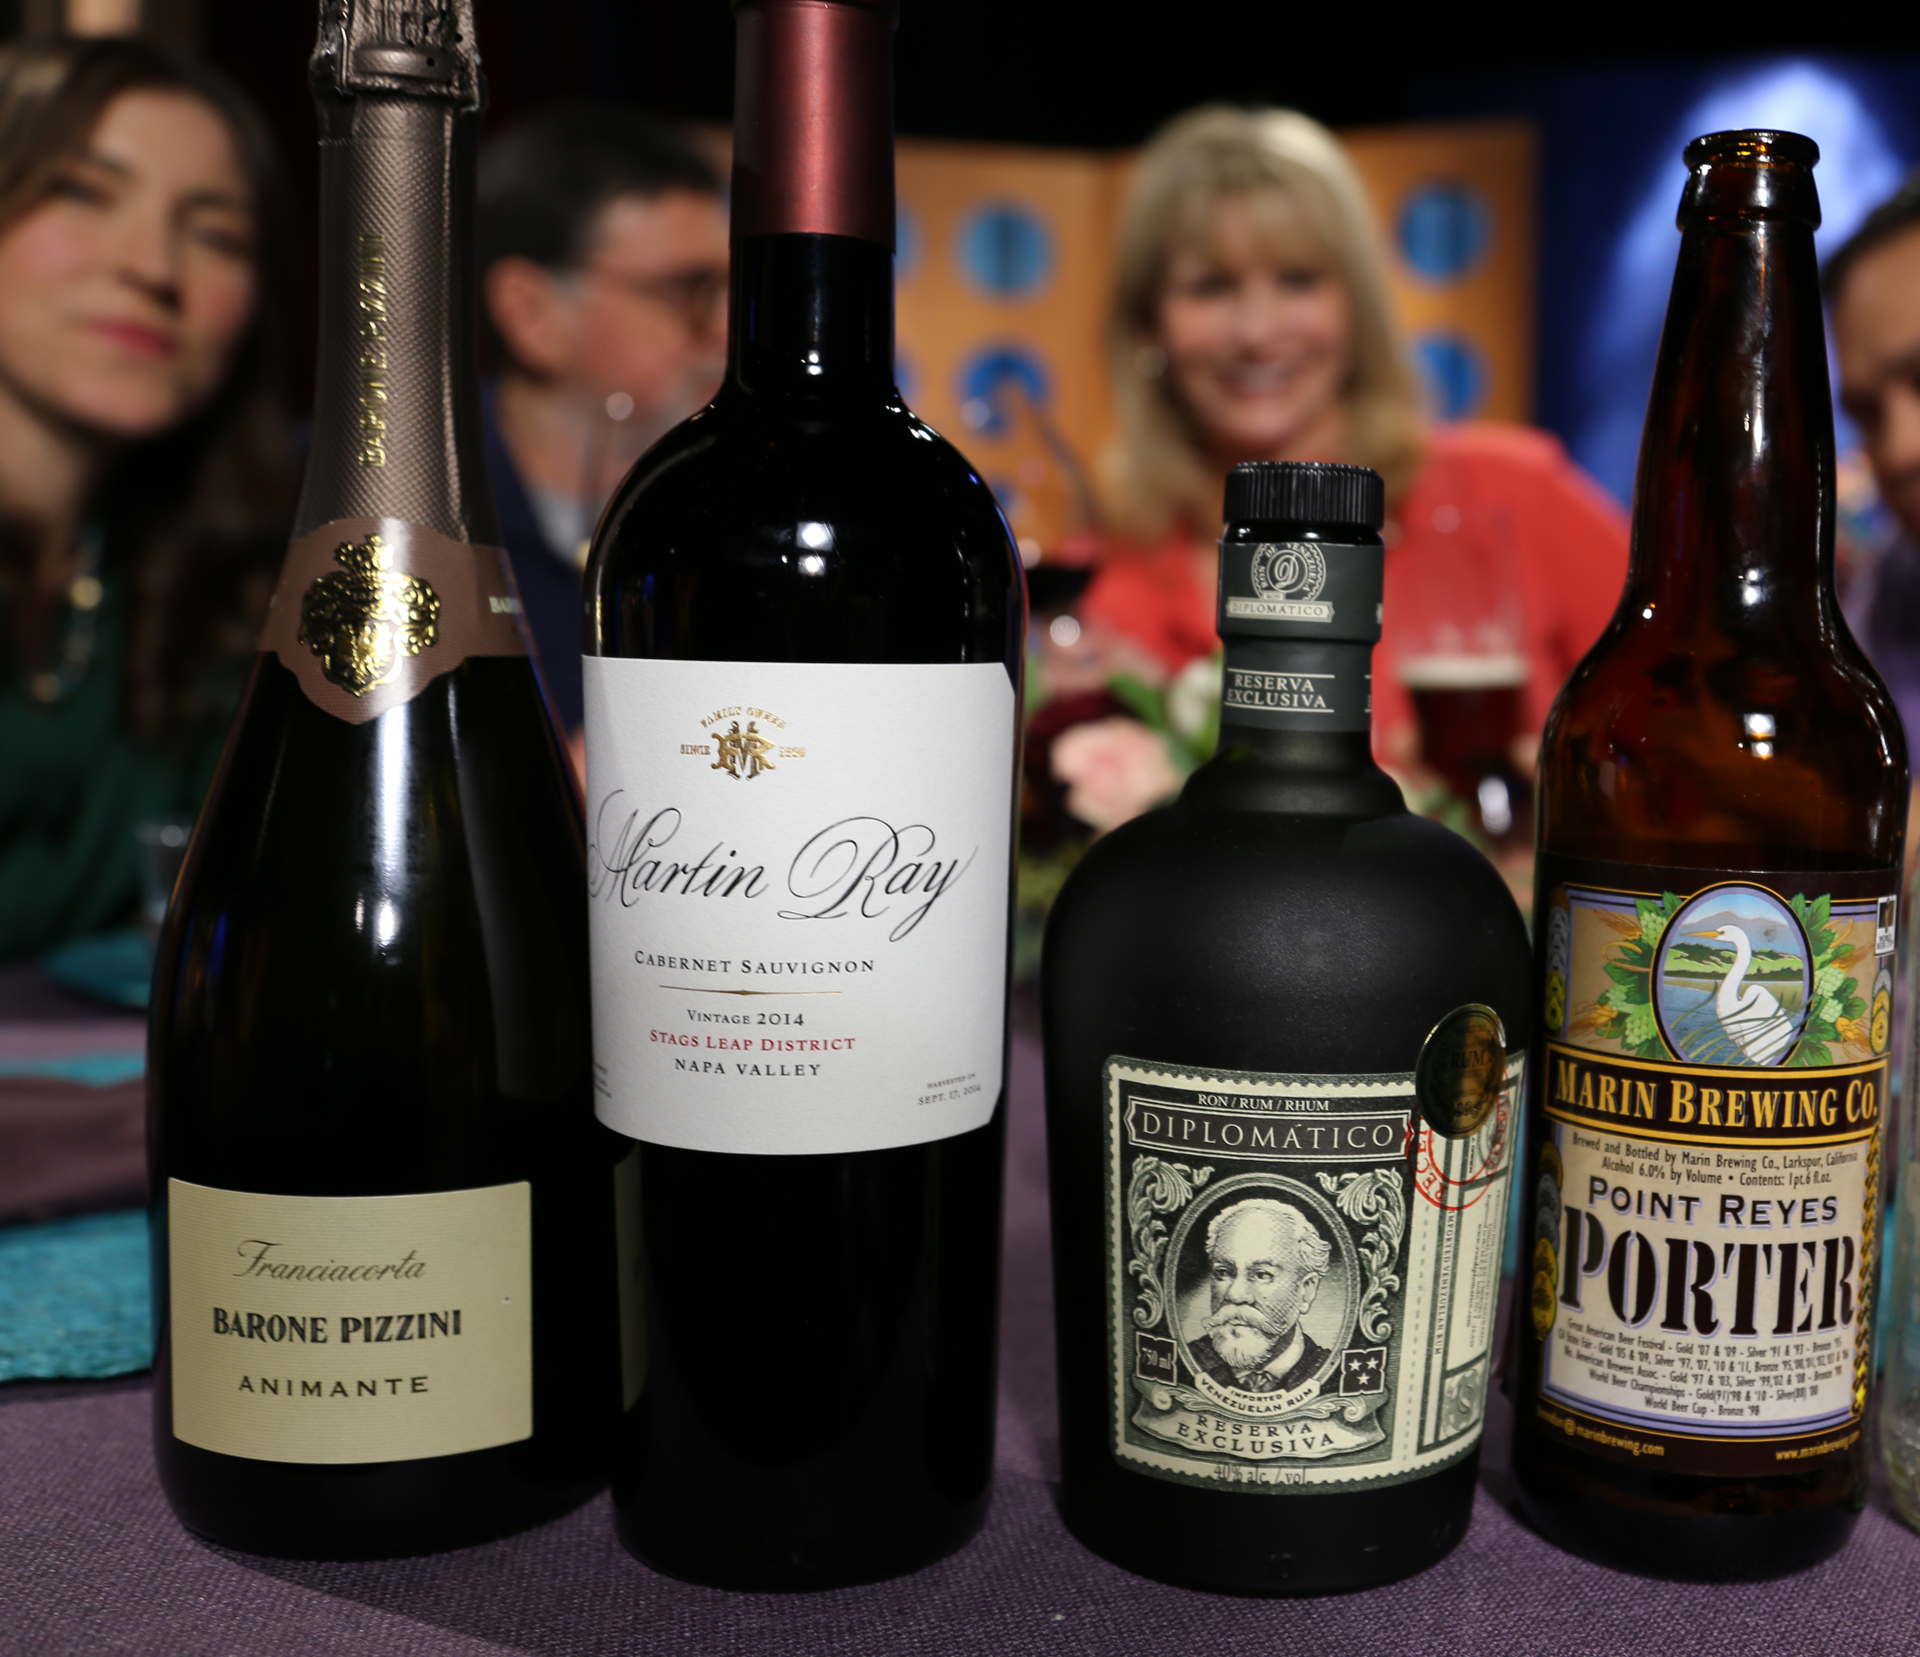 Wine, beer and spirits that guests drank on the set of season 12 episode 4.